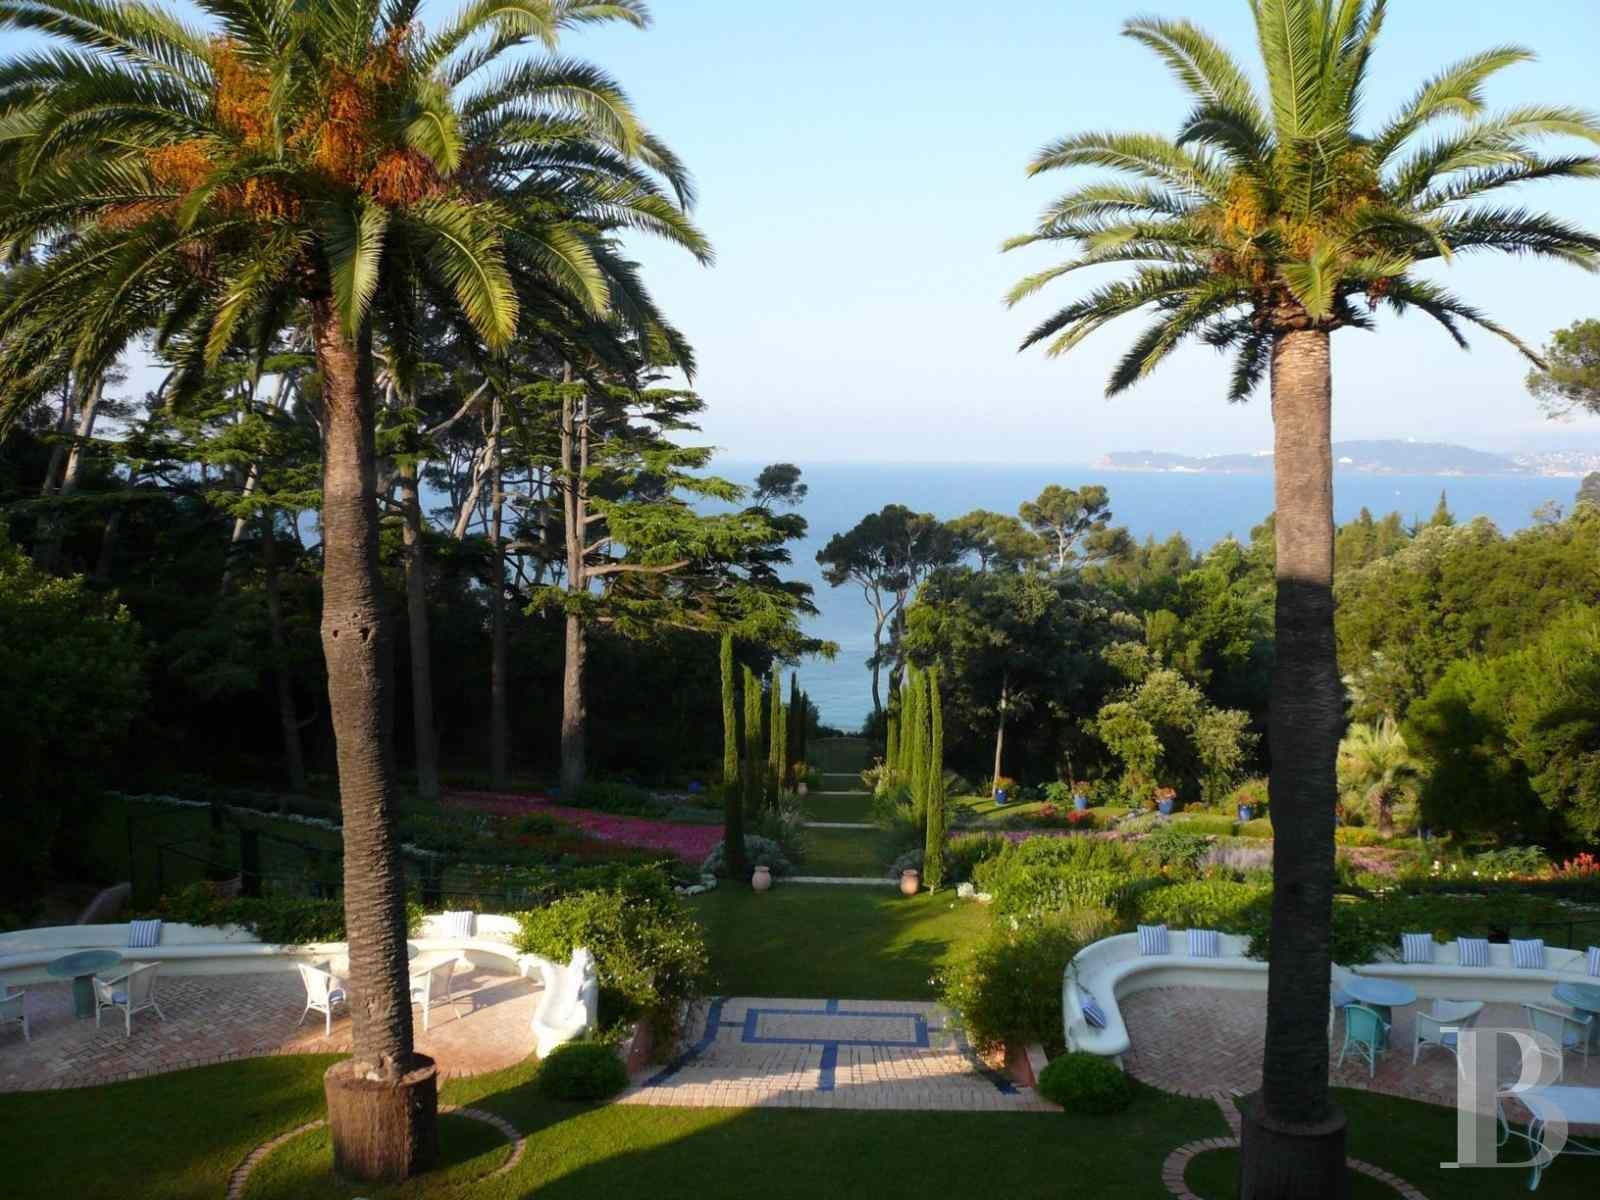 property for sale France provence cote dazur villa toulon - 3 zoom